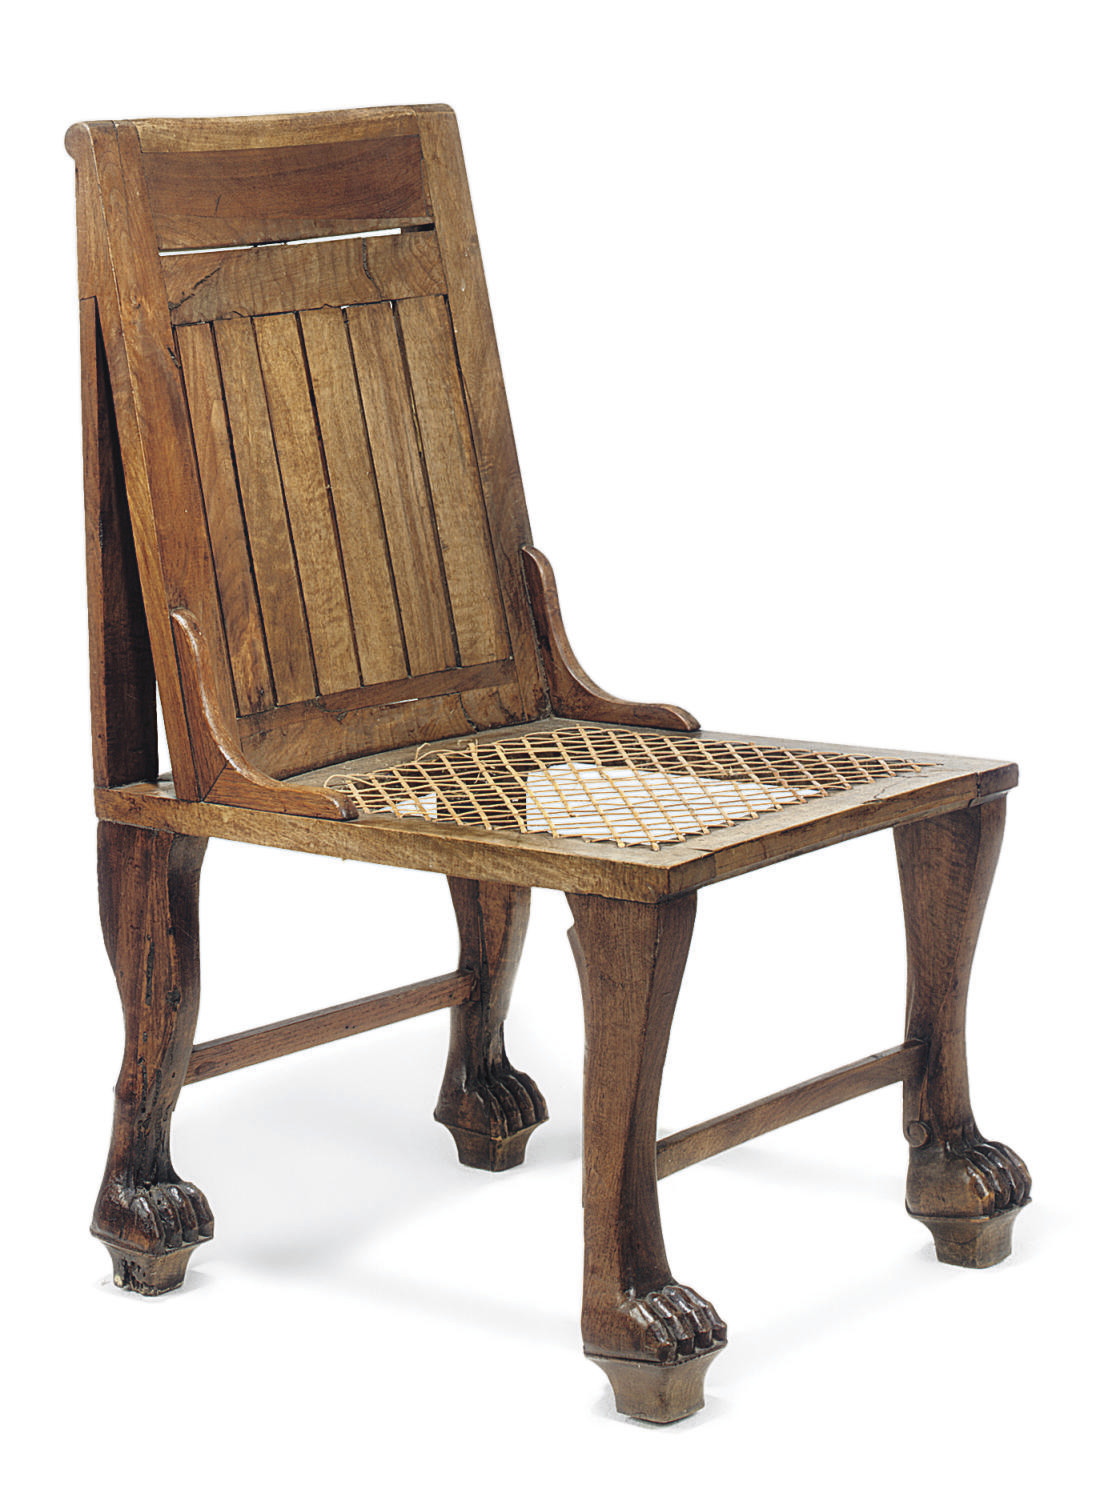 AN EGYPTIAN REVIVAL WALNUT SID